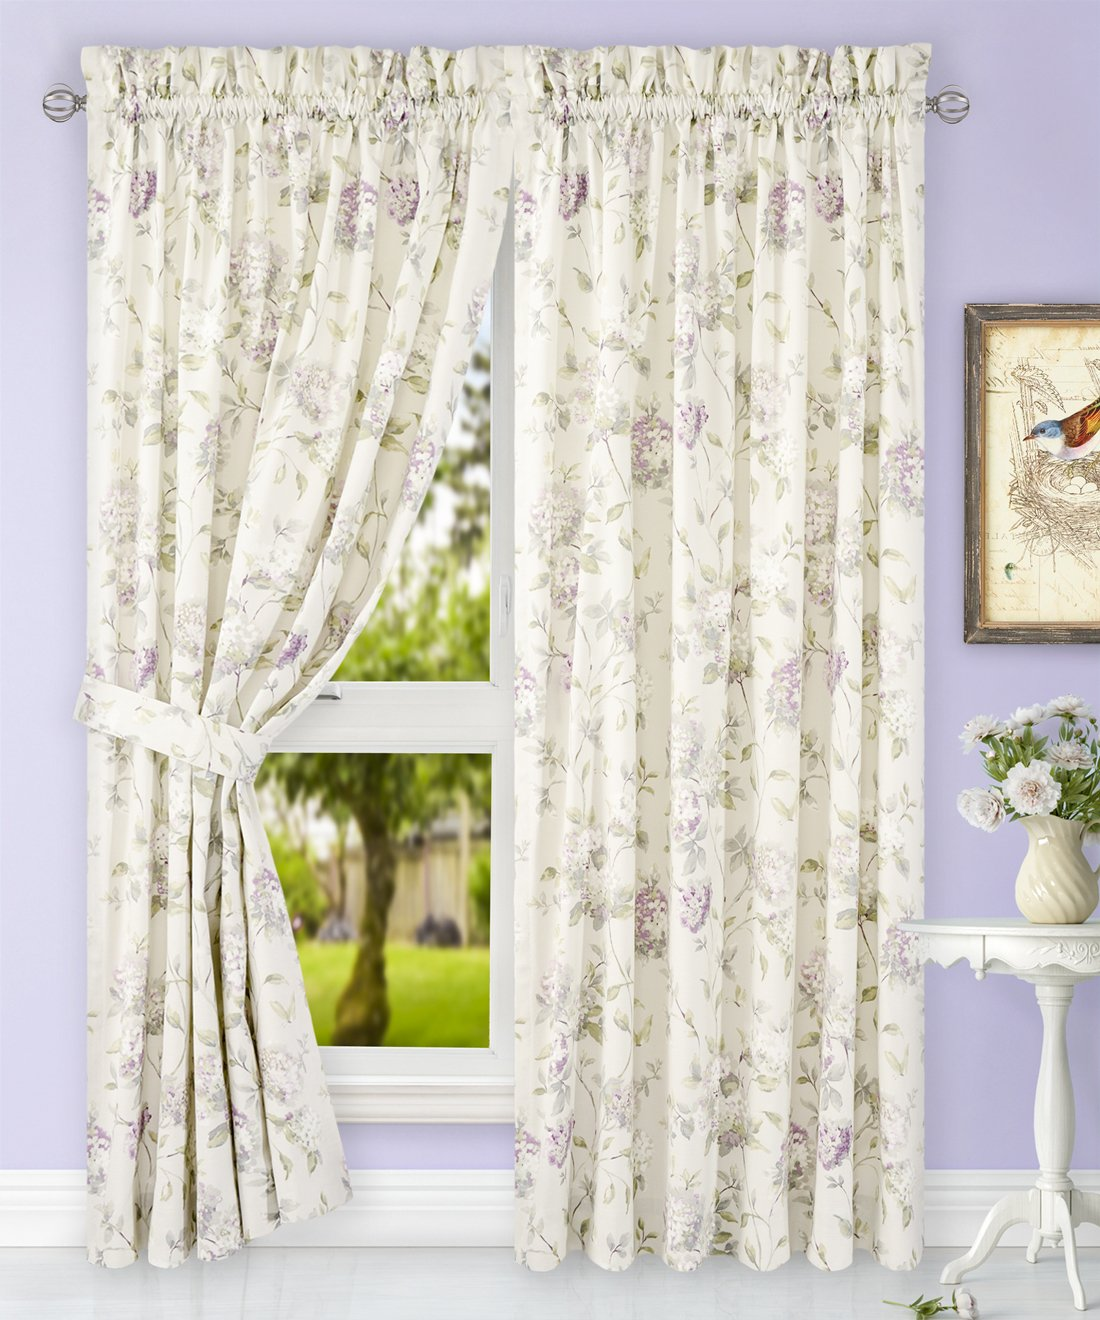 Simple Comfort Abigail Traditional Hydrangea Floral Print (Tailored Panel Pair with Tiebacks, 90 x 63, Lilac) by Simple Comfort